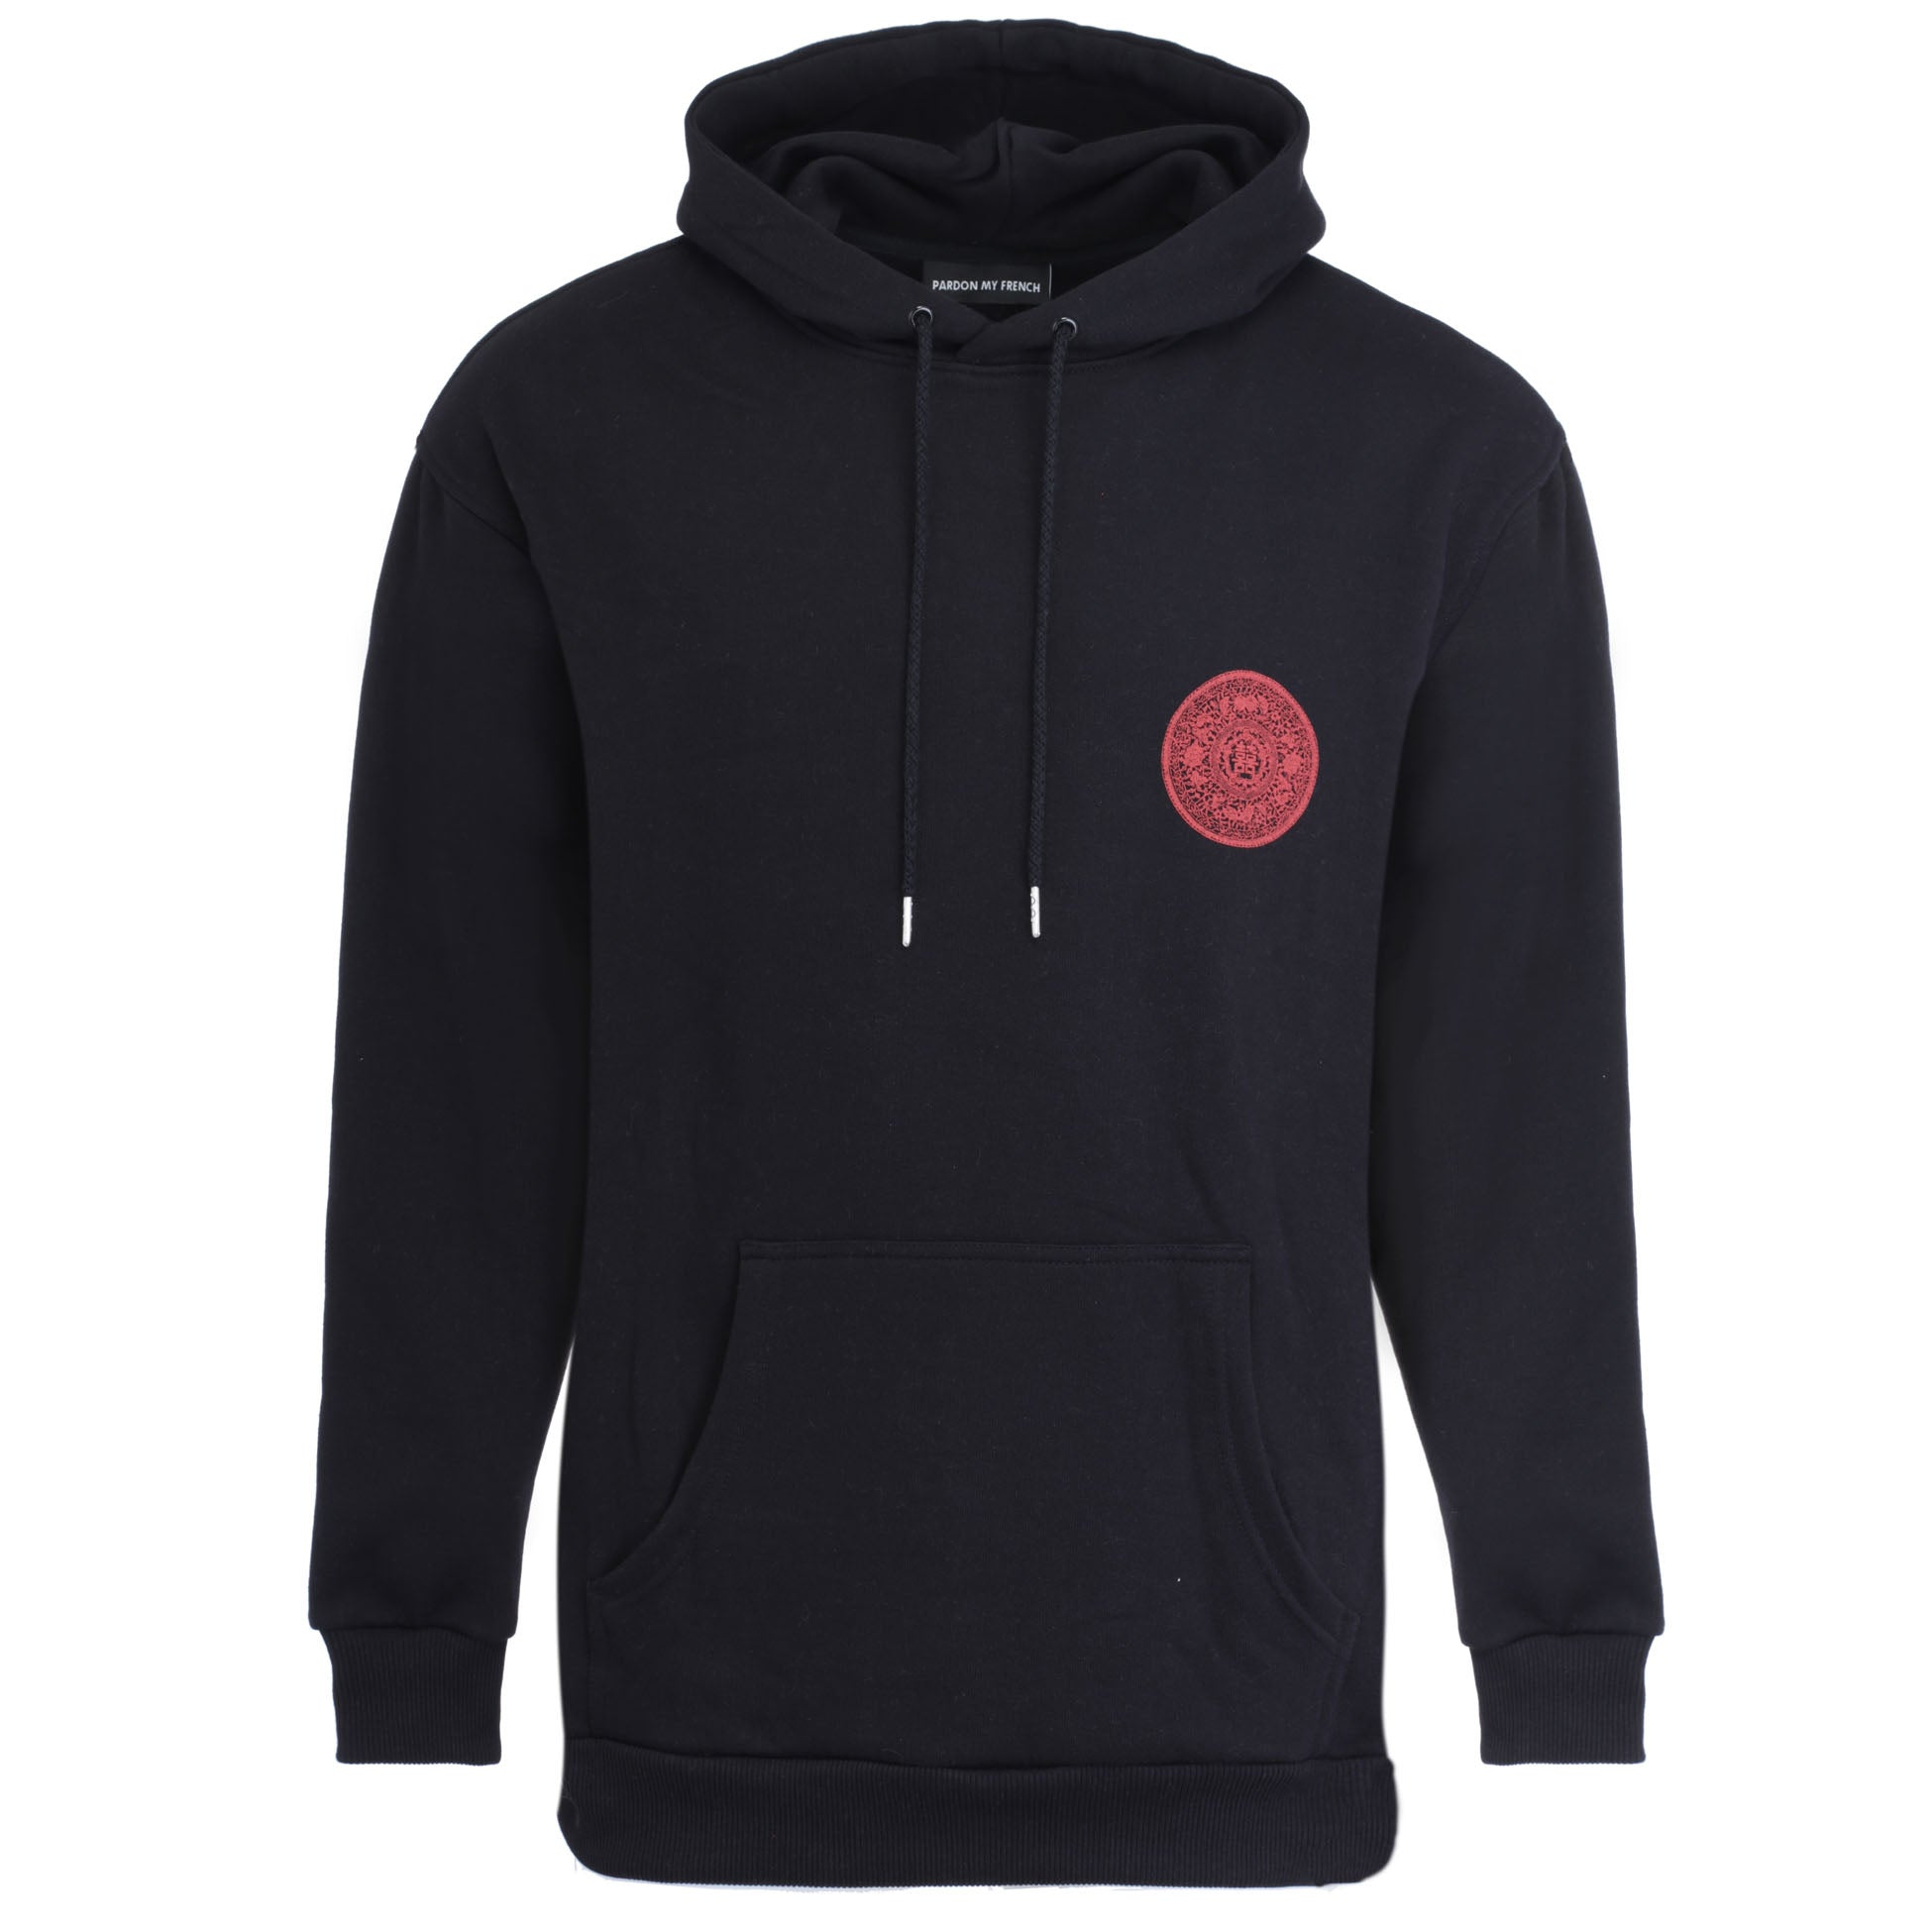 HOODIE CHINA EDITION - BLACK